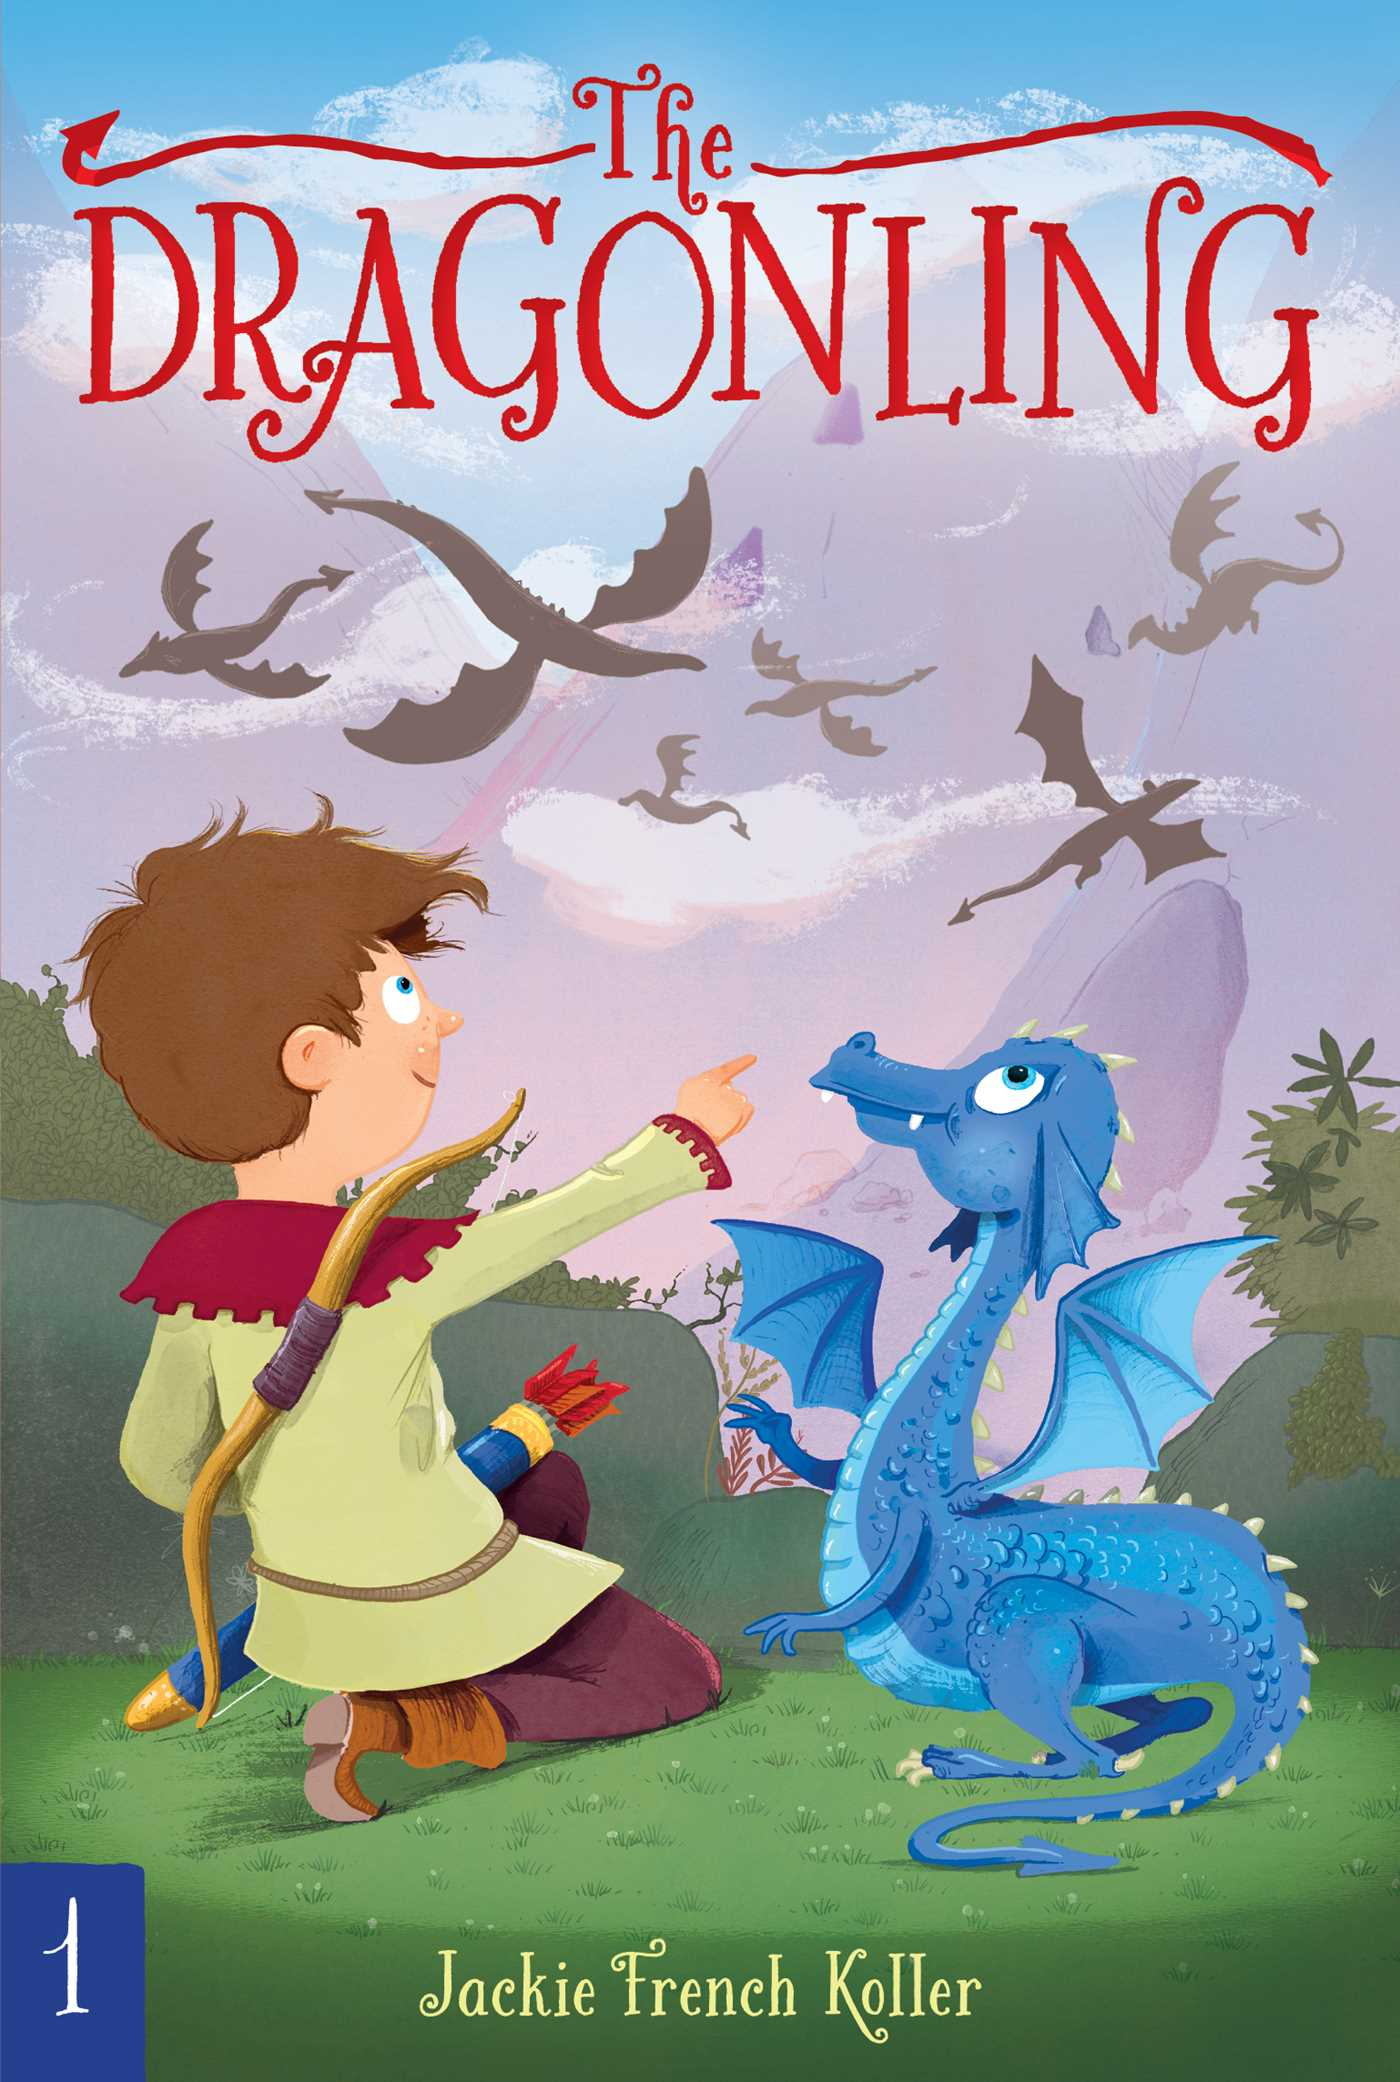 The dragonling 9781534400627 hr